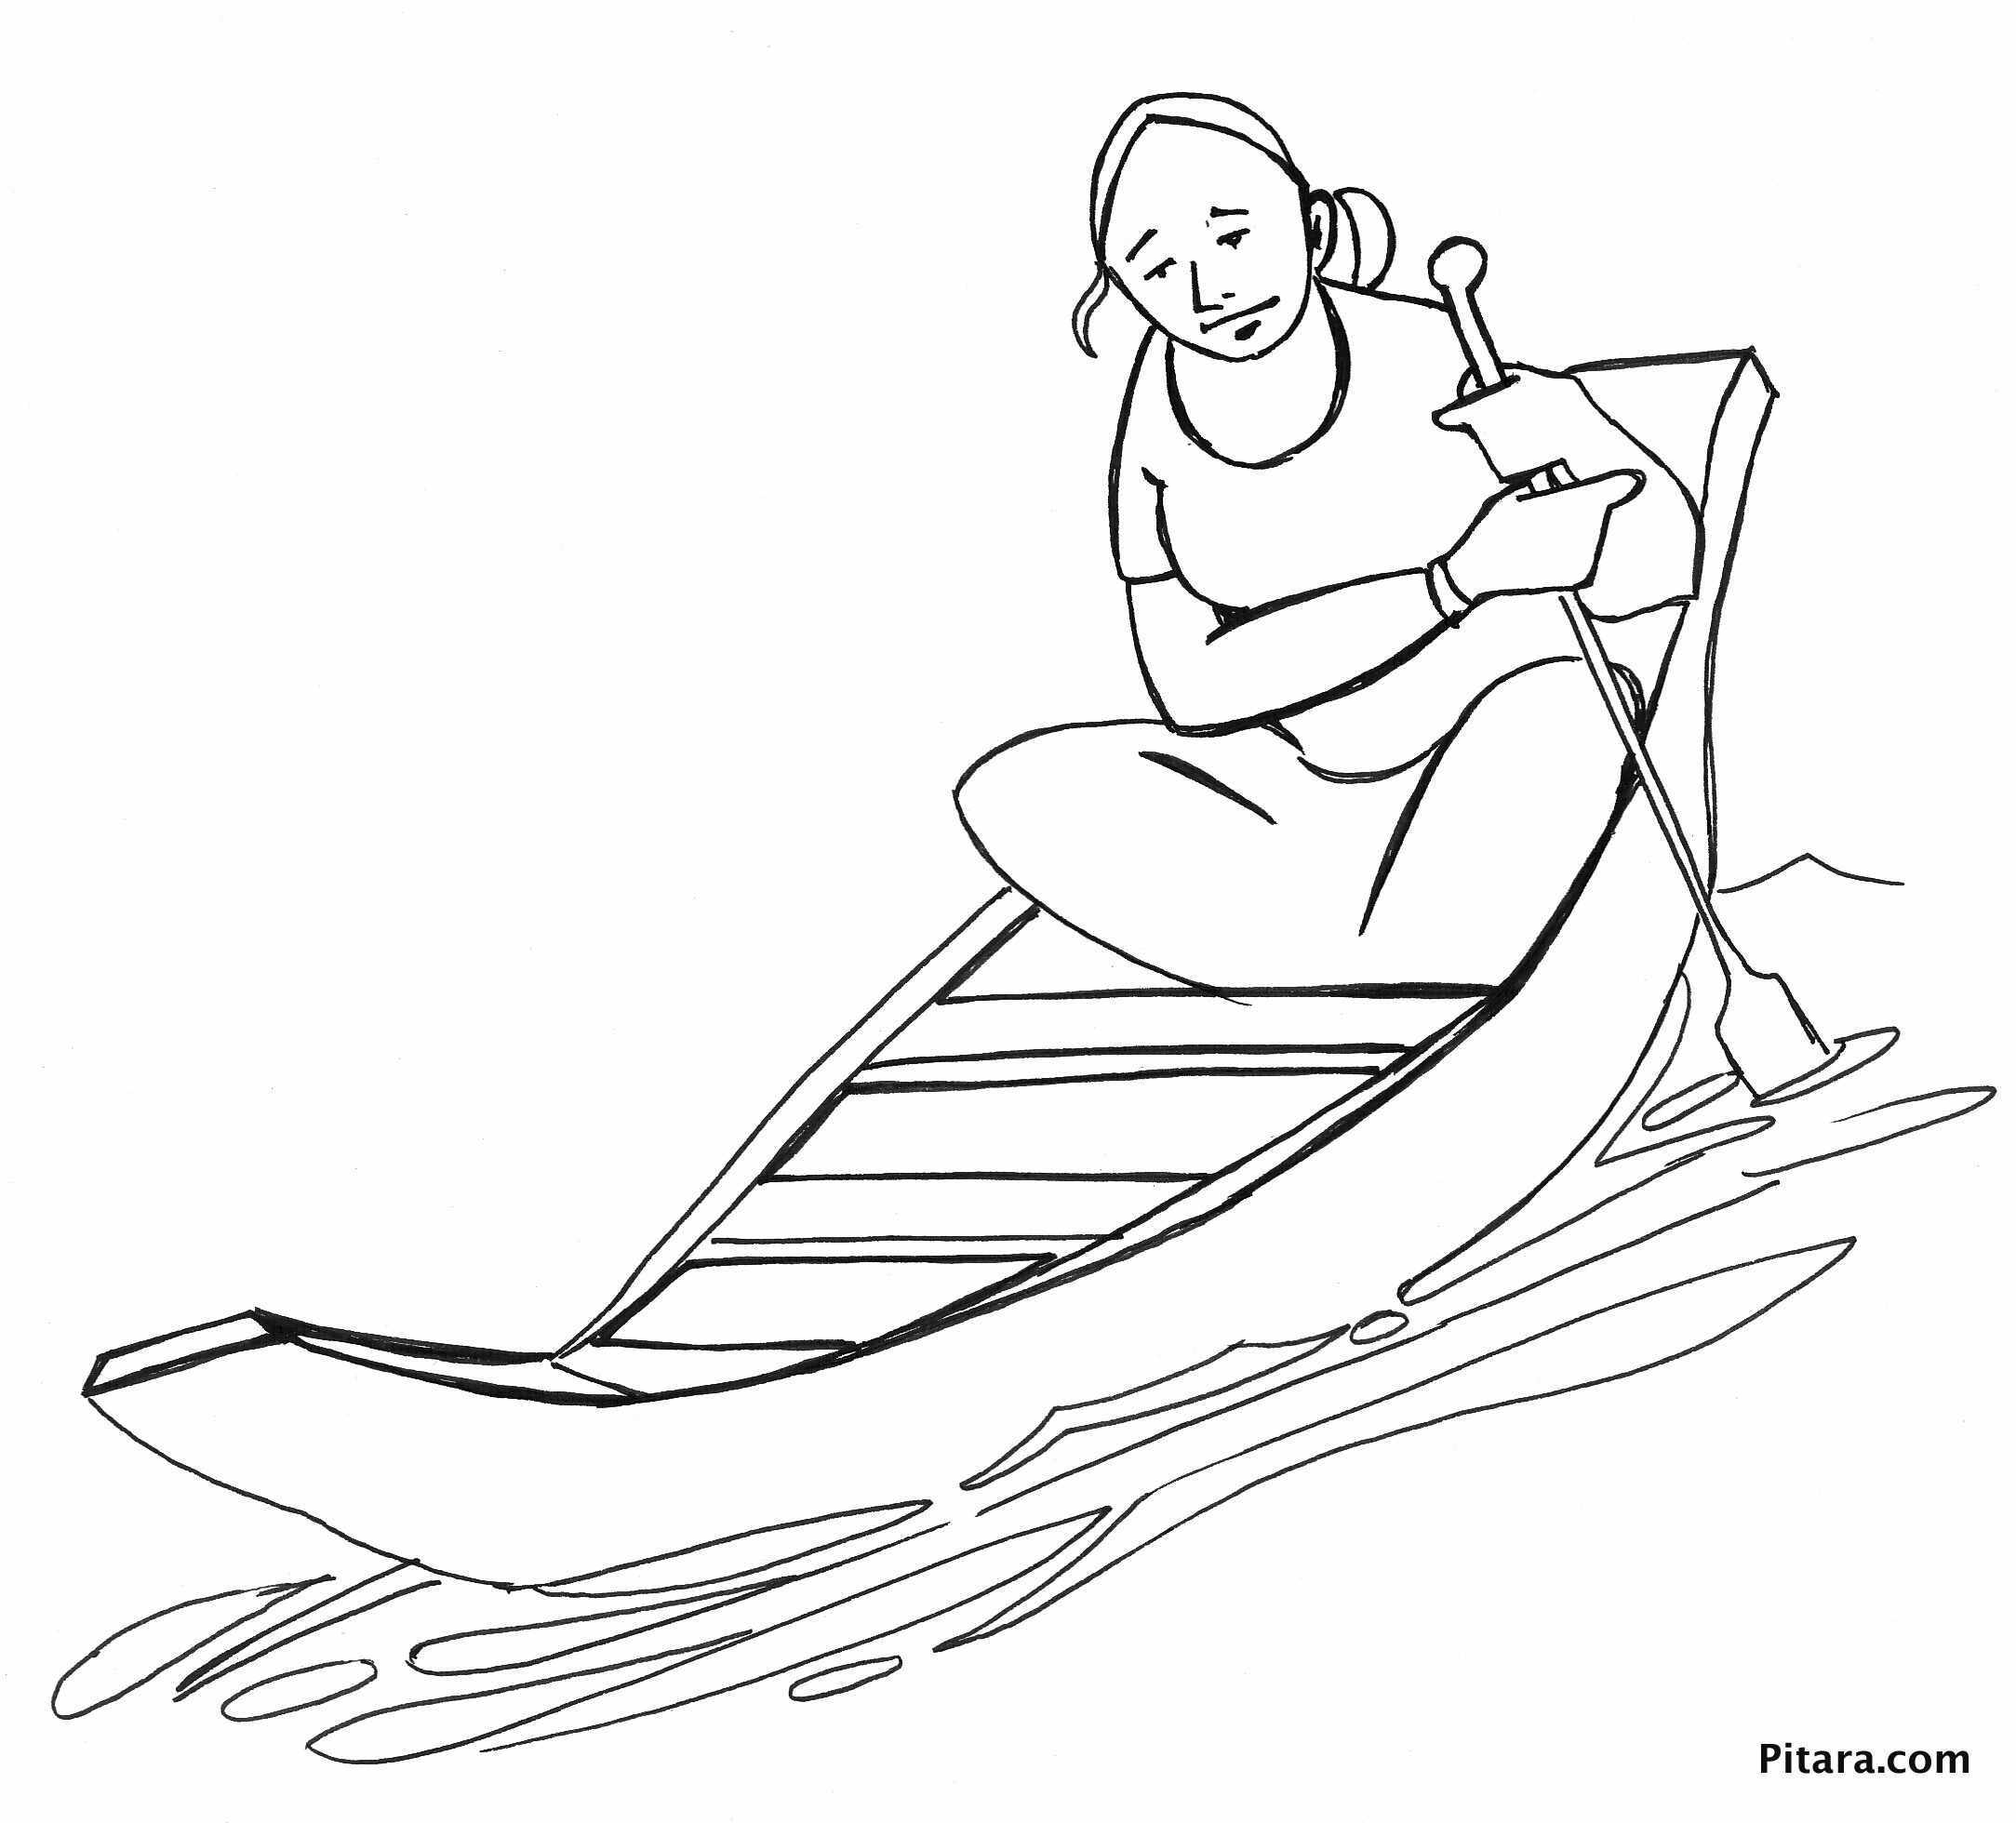 Row Boat Drawing at GetDrawings.com | Free for personal use Row Boat ...